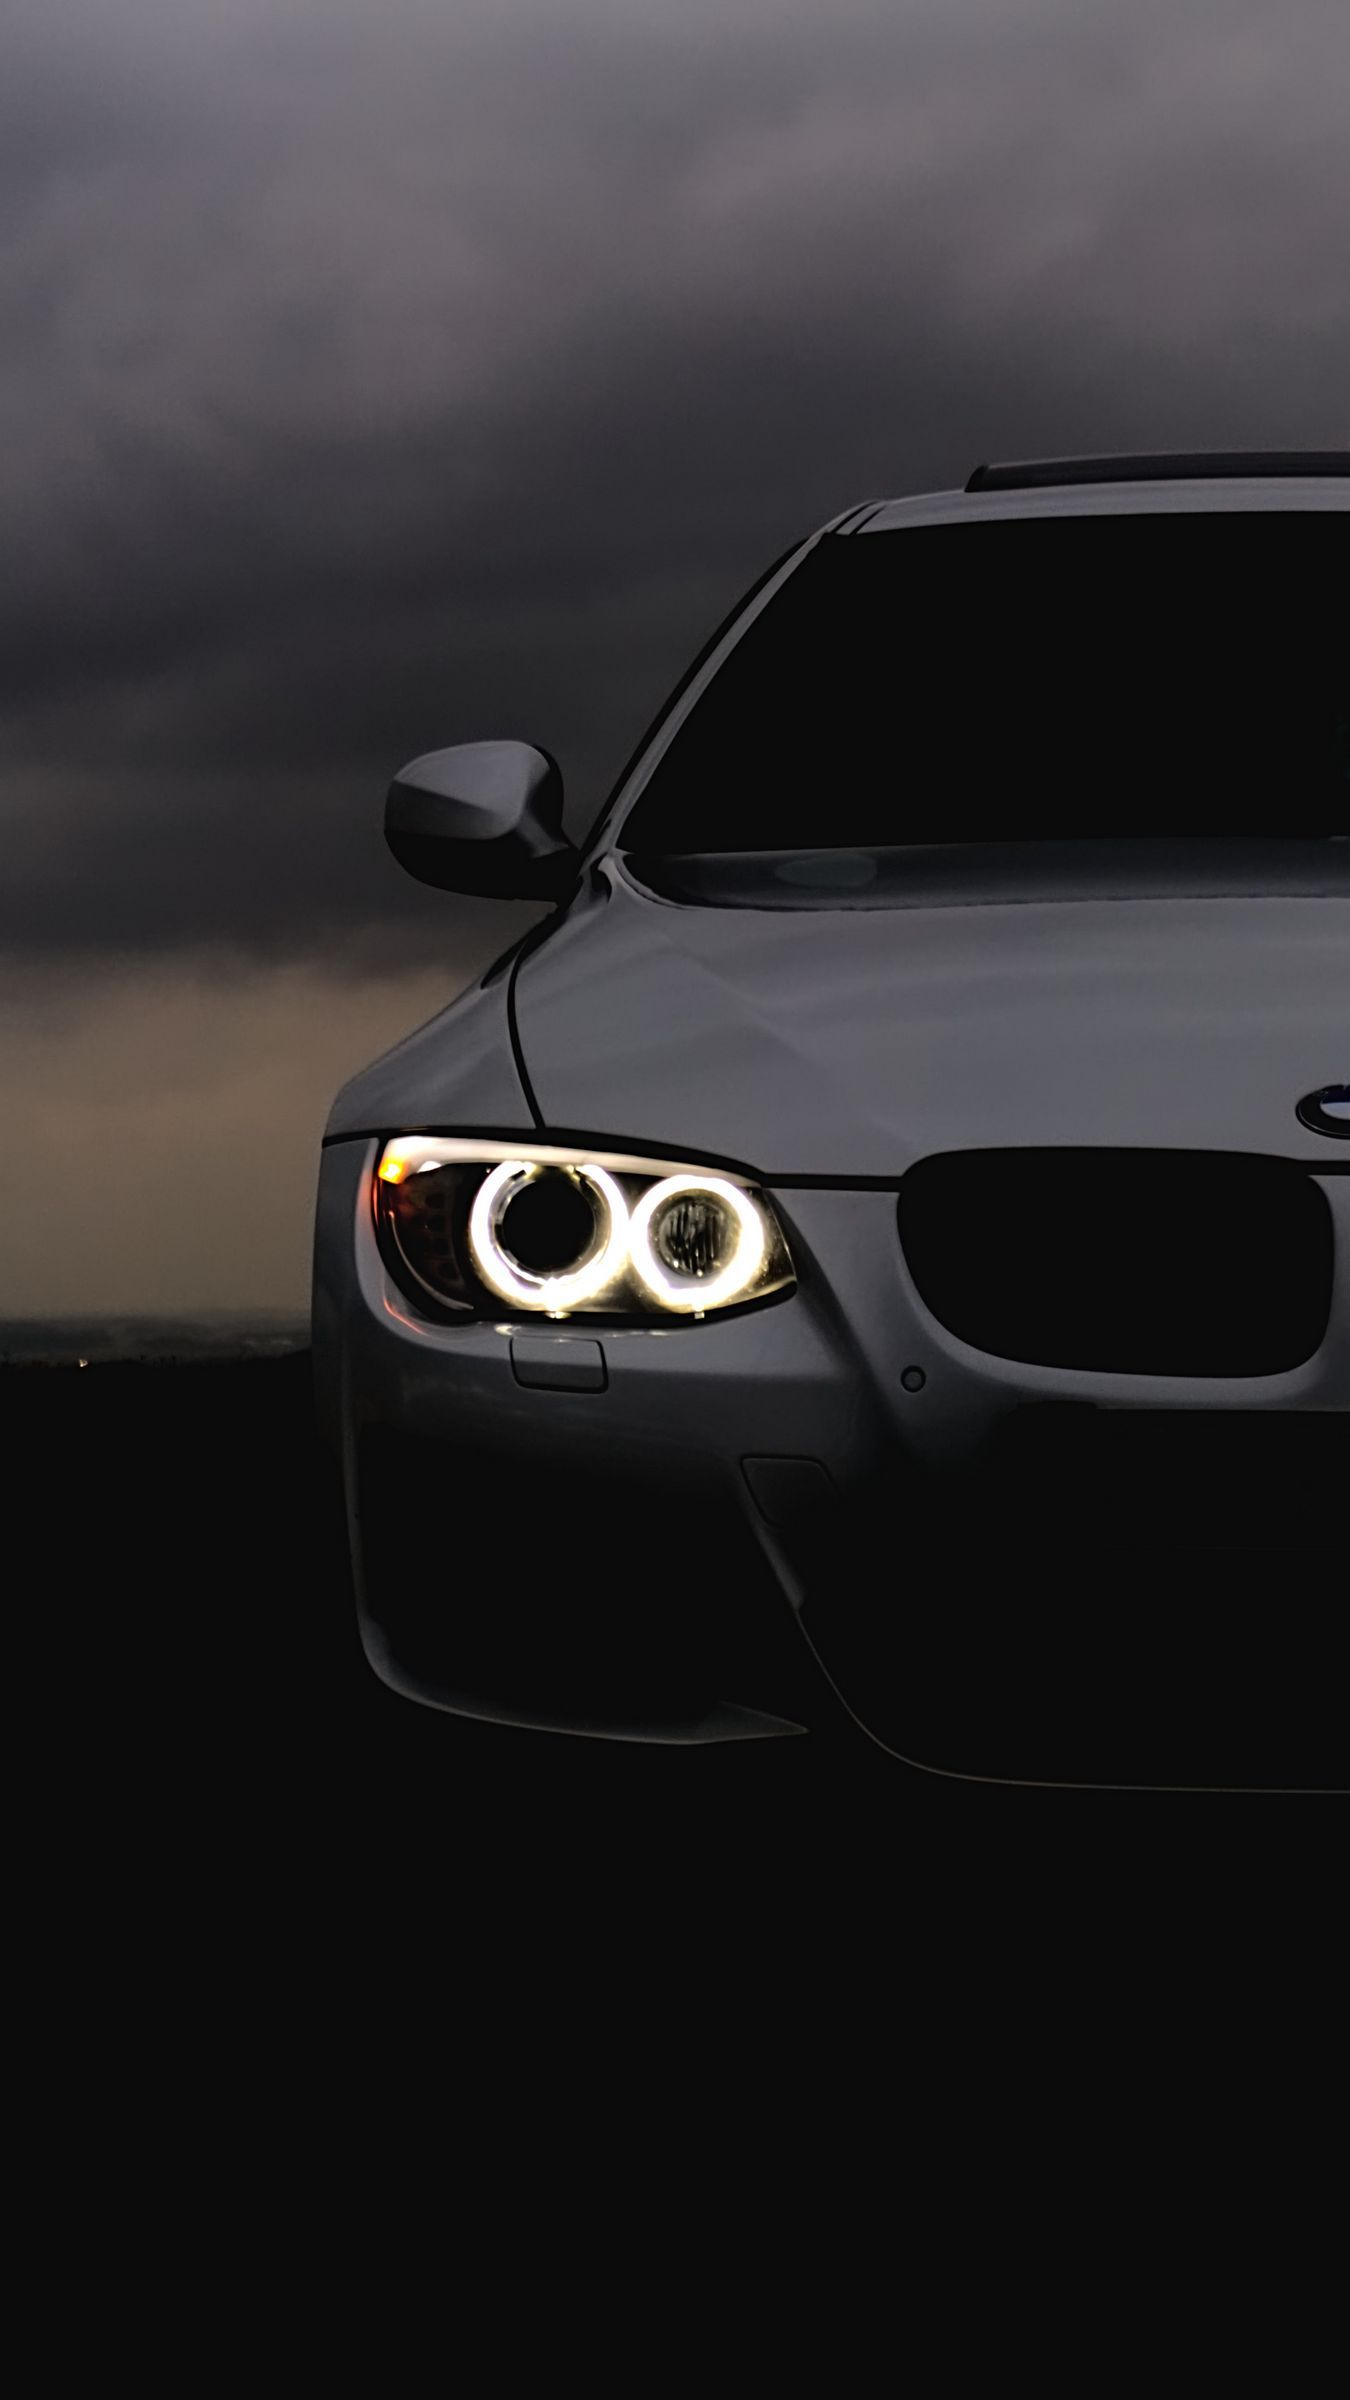 Bmw Headlights Car Cloudy Overcast Wallpaper In 2021 Bmw Bmw Wallpapers Car